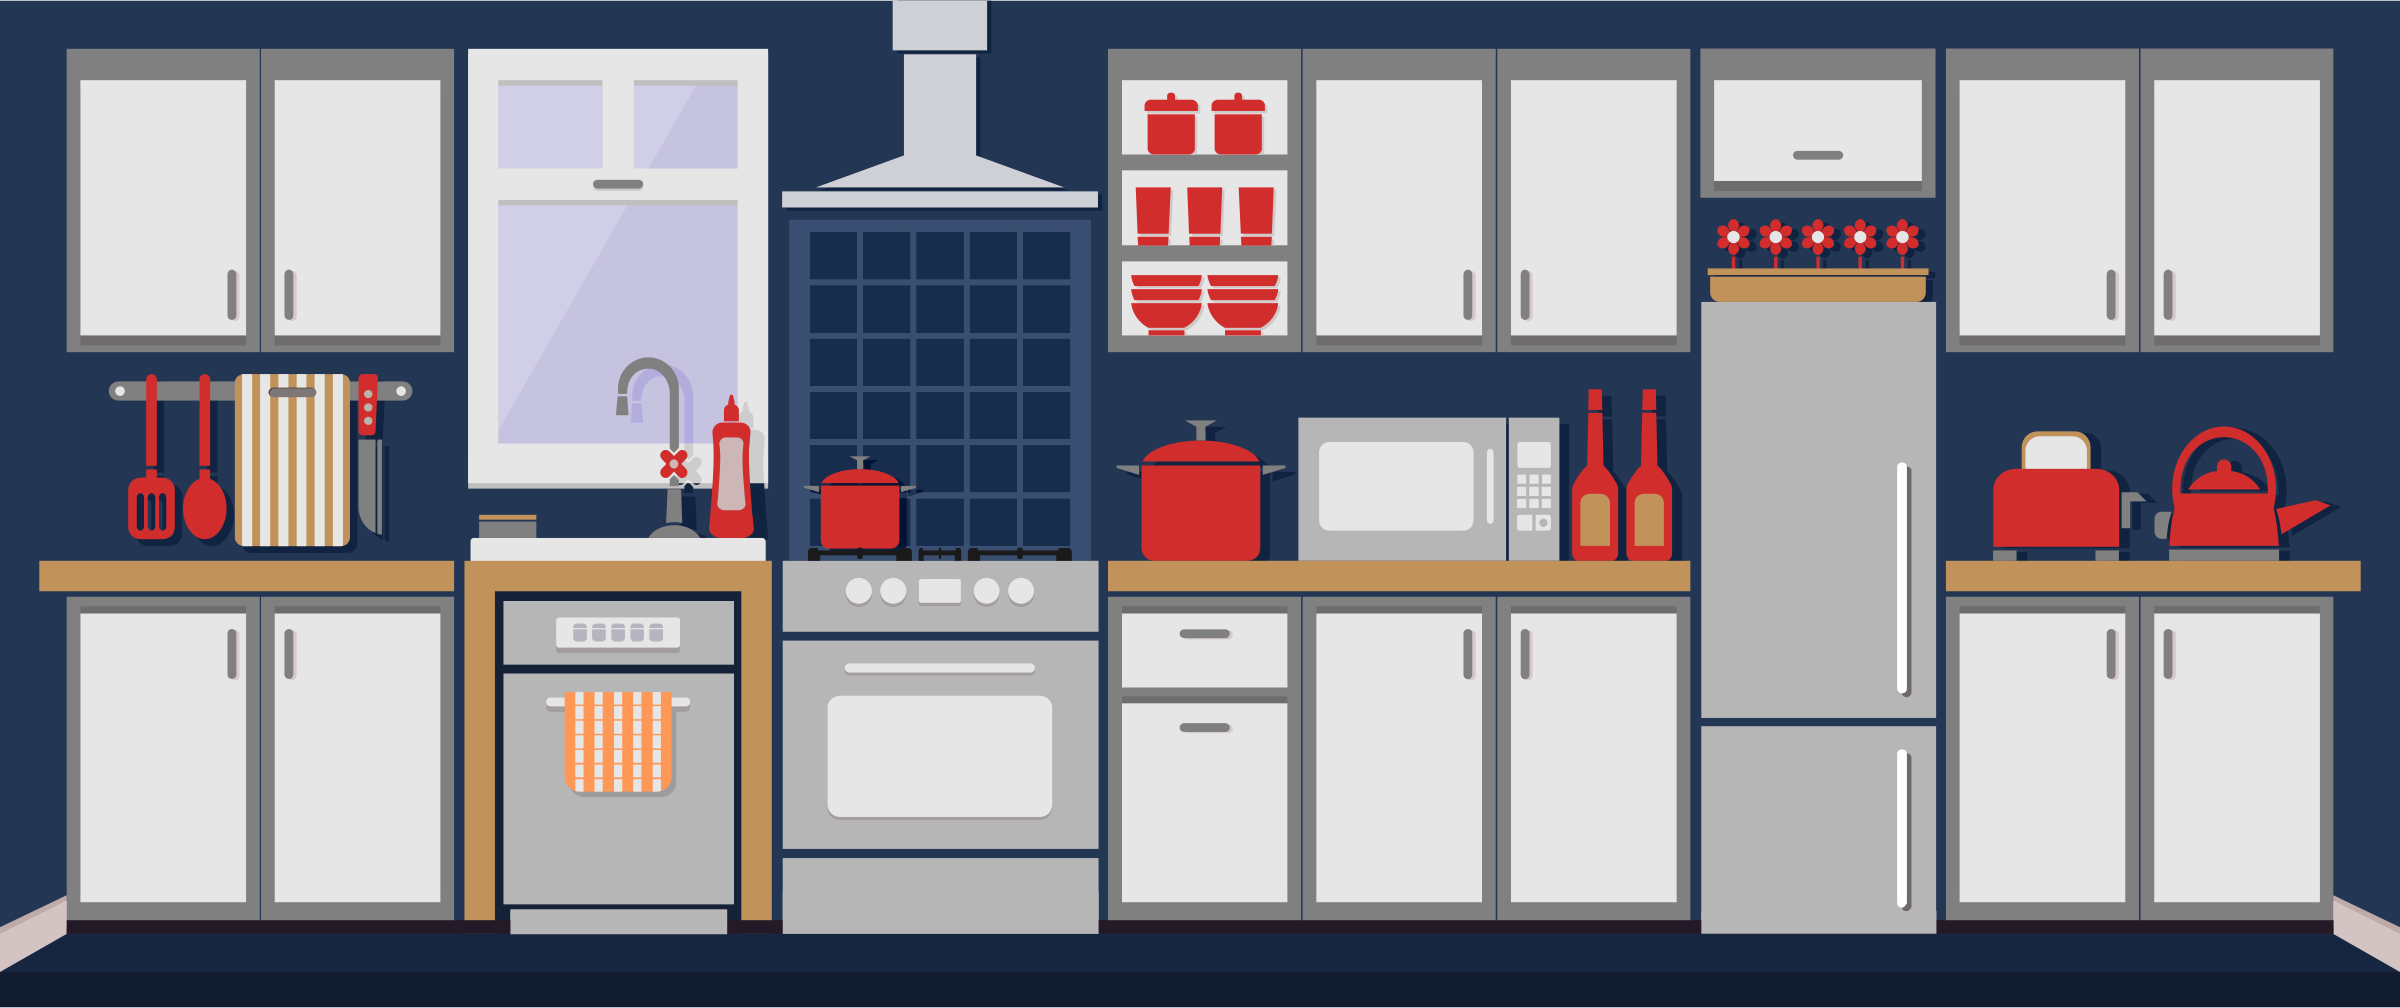 Free Kitchen Play Cliparts, Download Free Clip Art, Free.